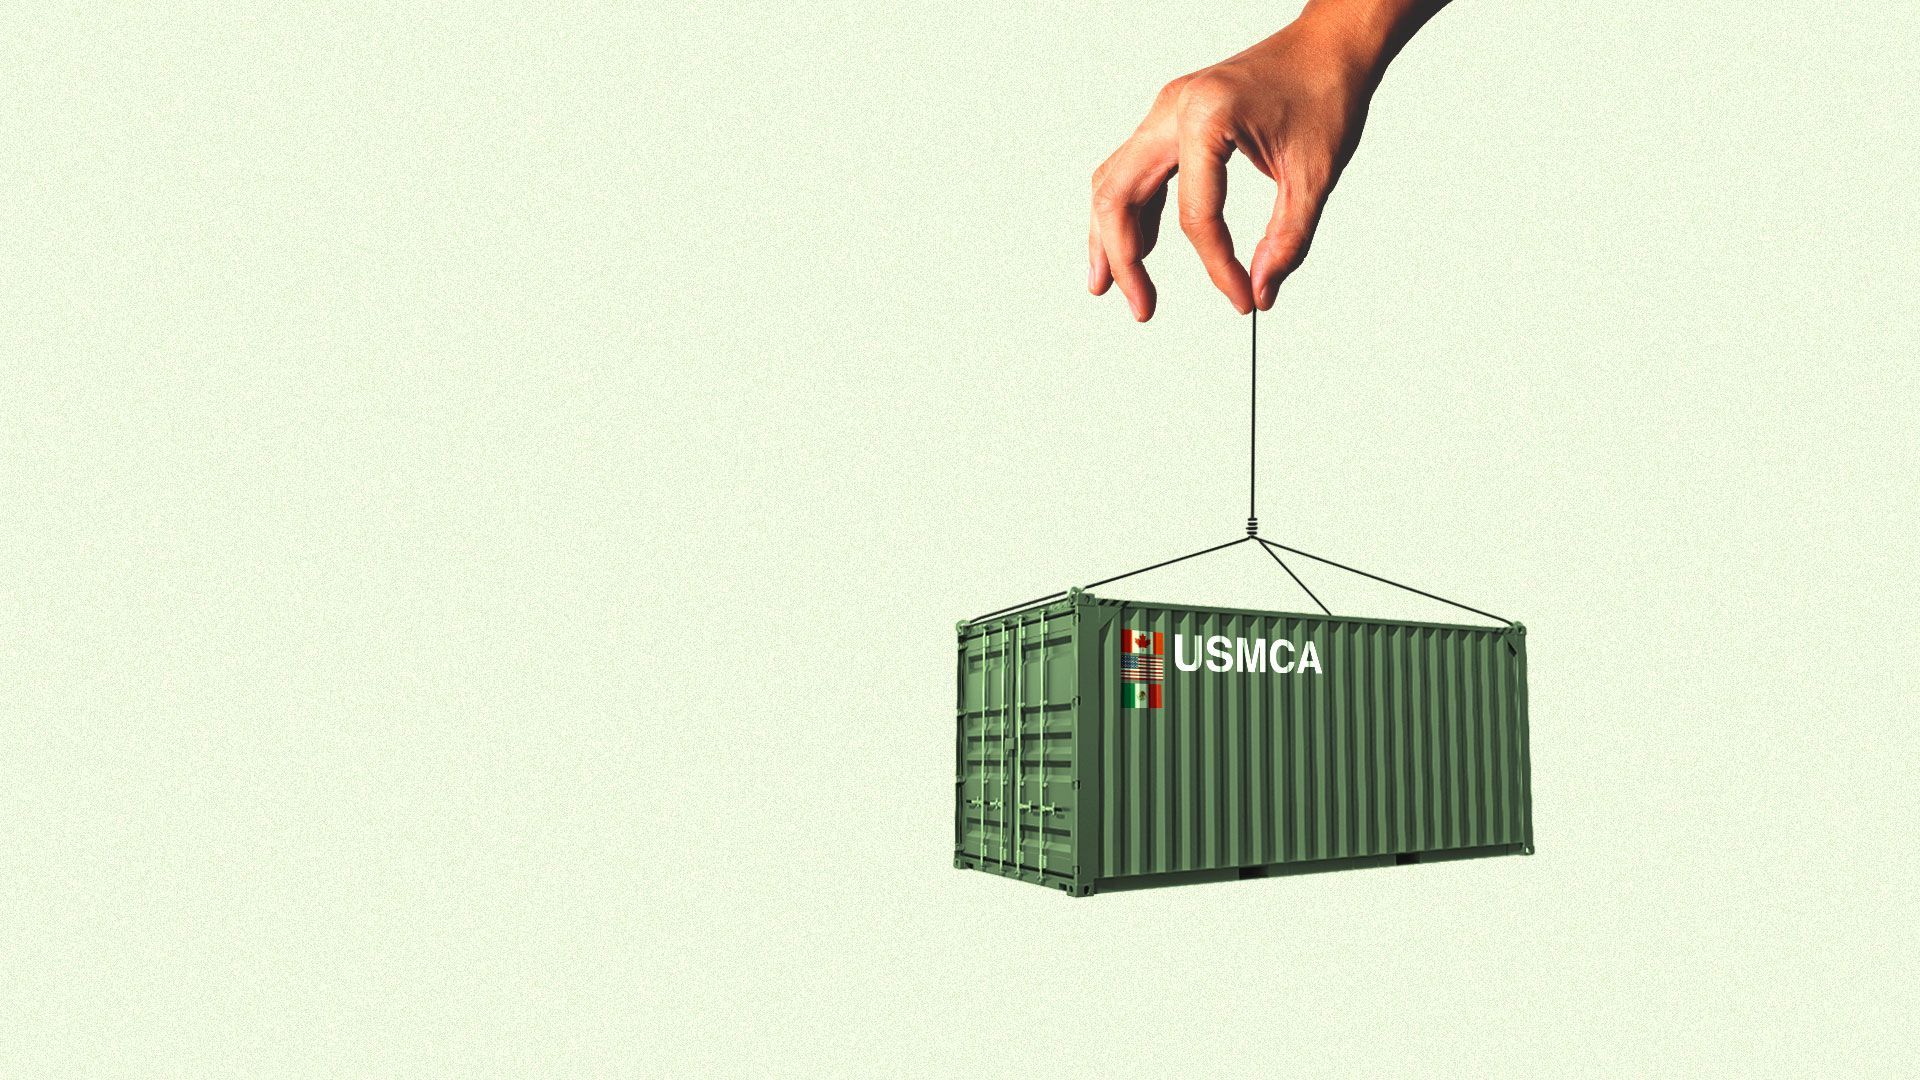 A hand holding a shipping container by a fine string